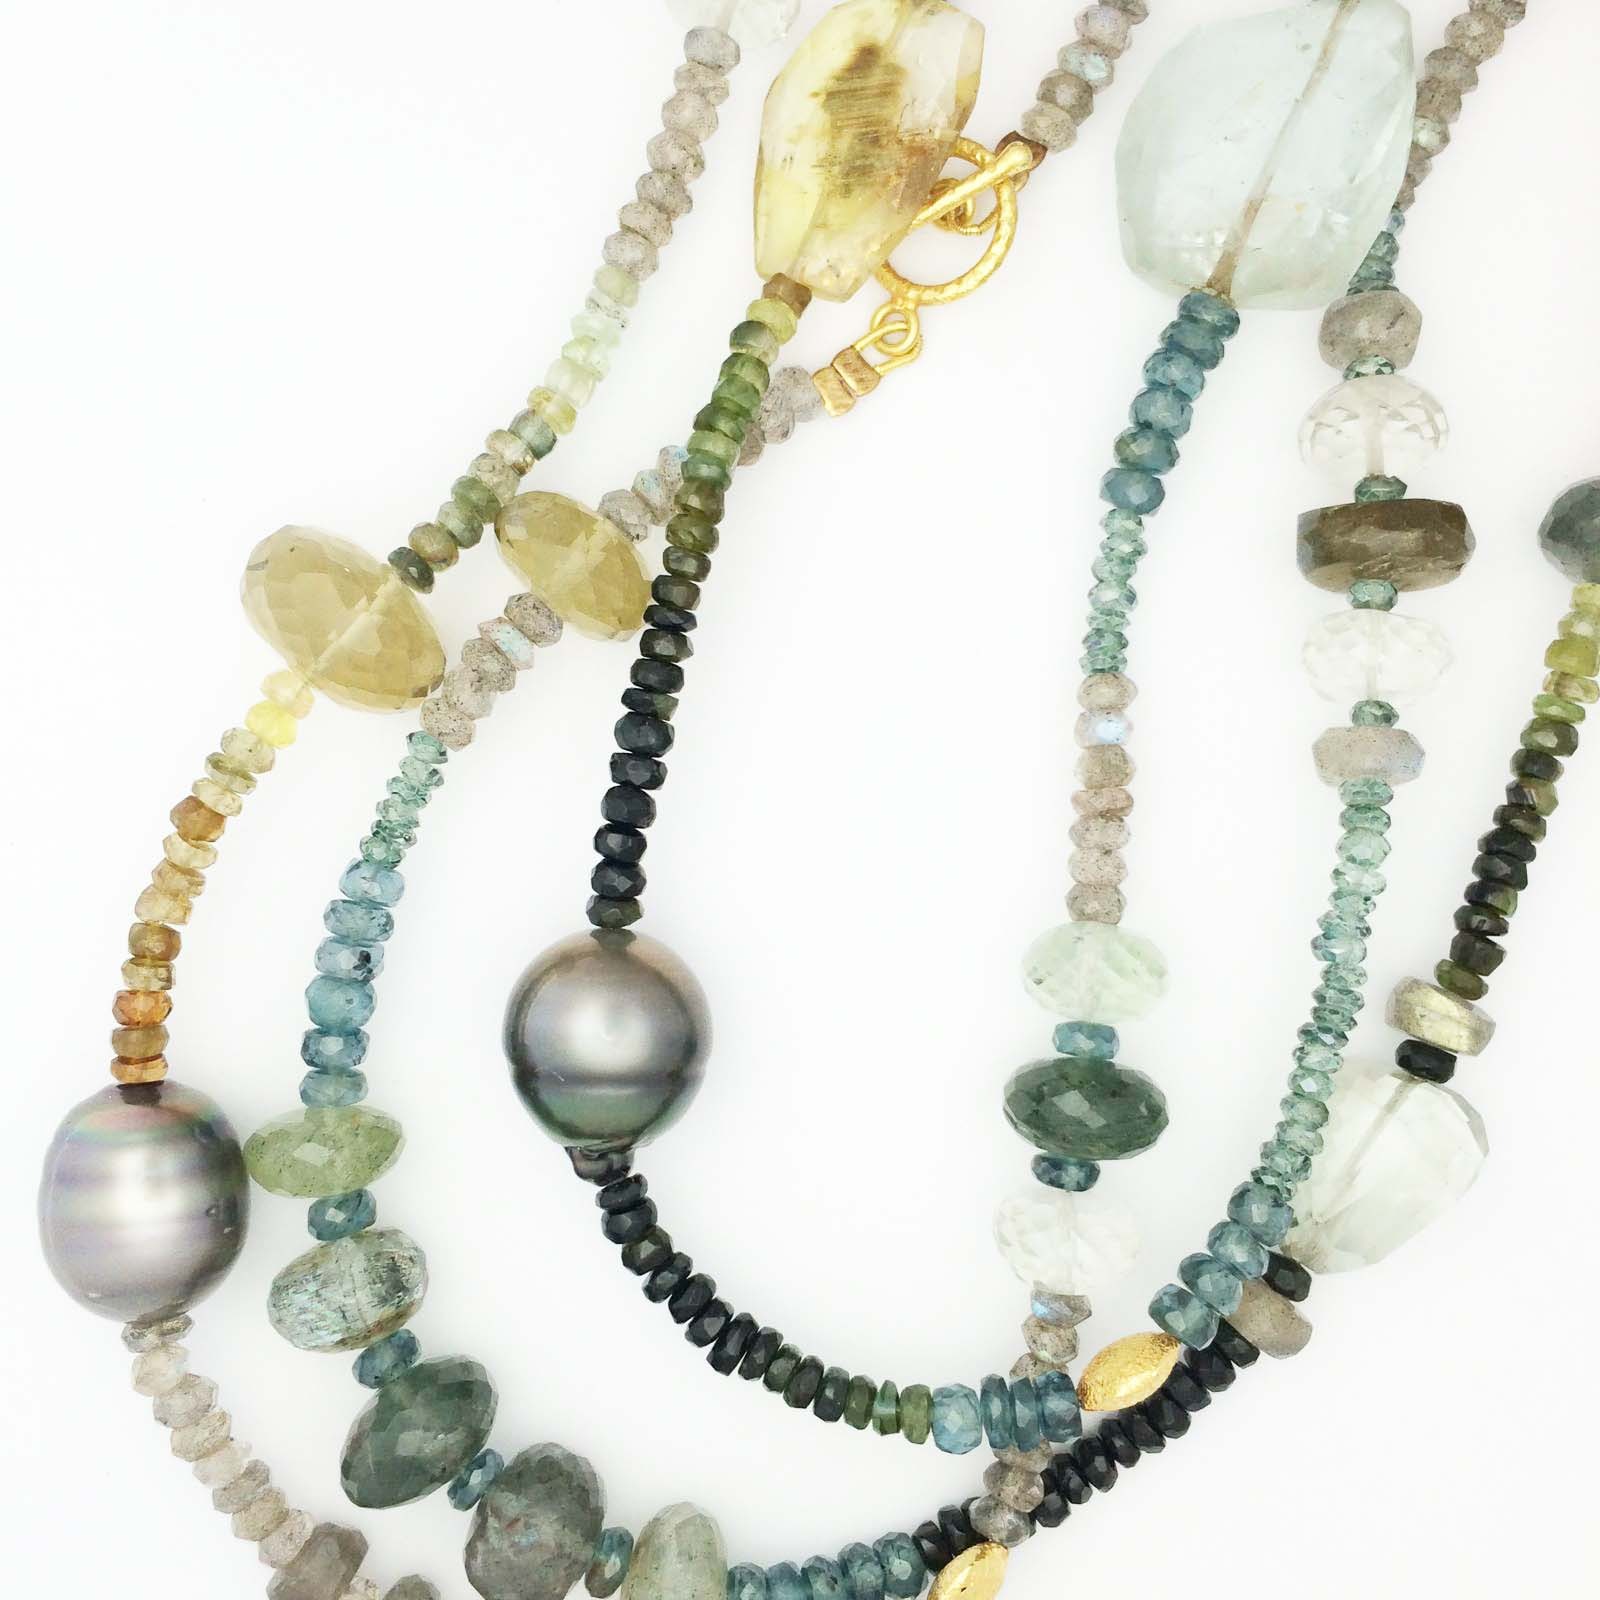 stone designs abalone pearls img by necklaces semi precious edited jewellery debbie jewelry